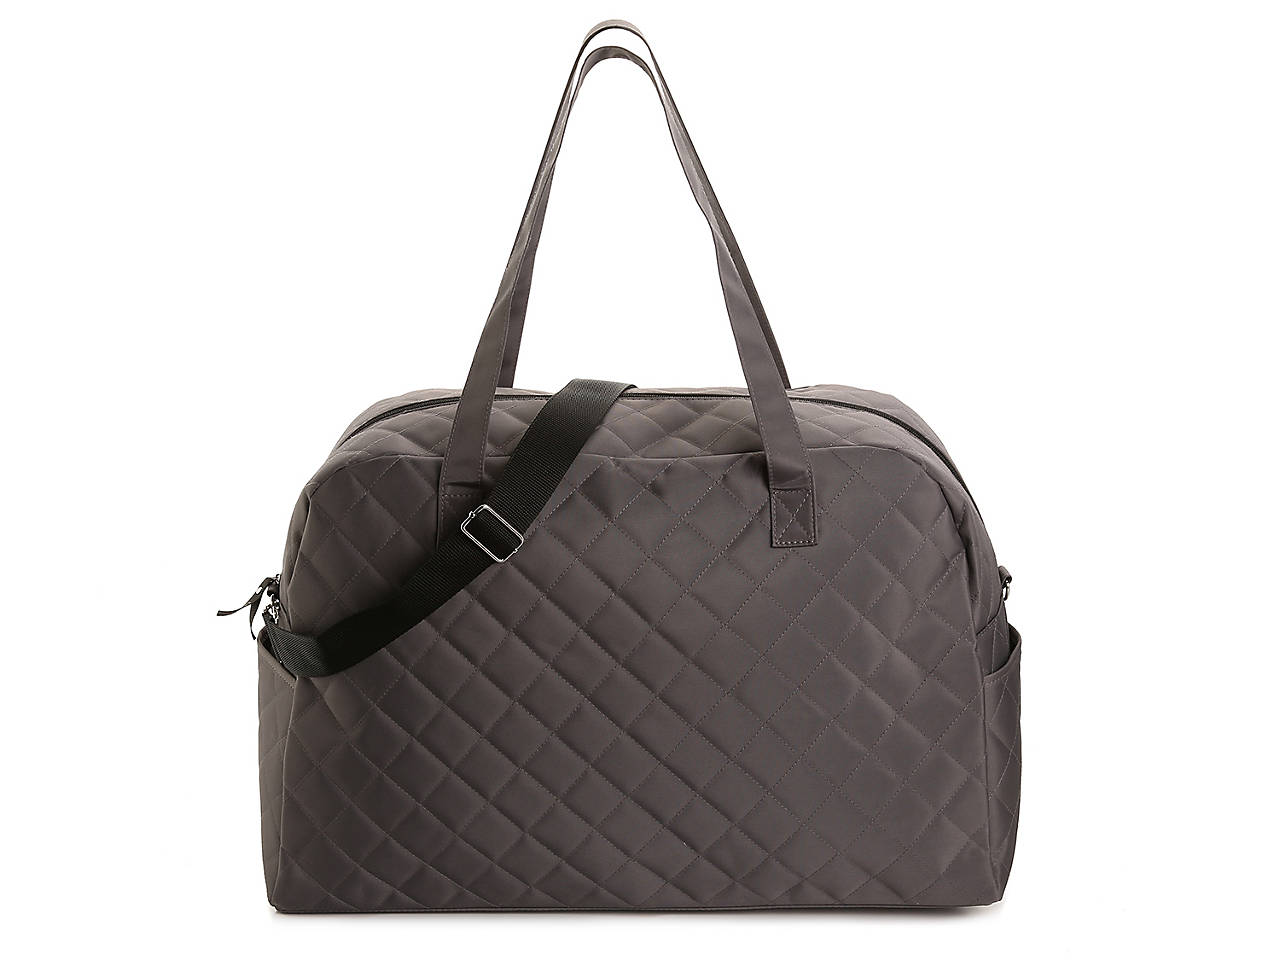 3defd3071ba DSW Exclusive Free Quilted Weekender Women s Handbags   Accessories ...